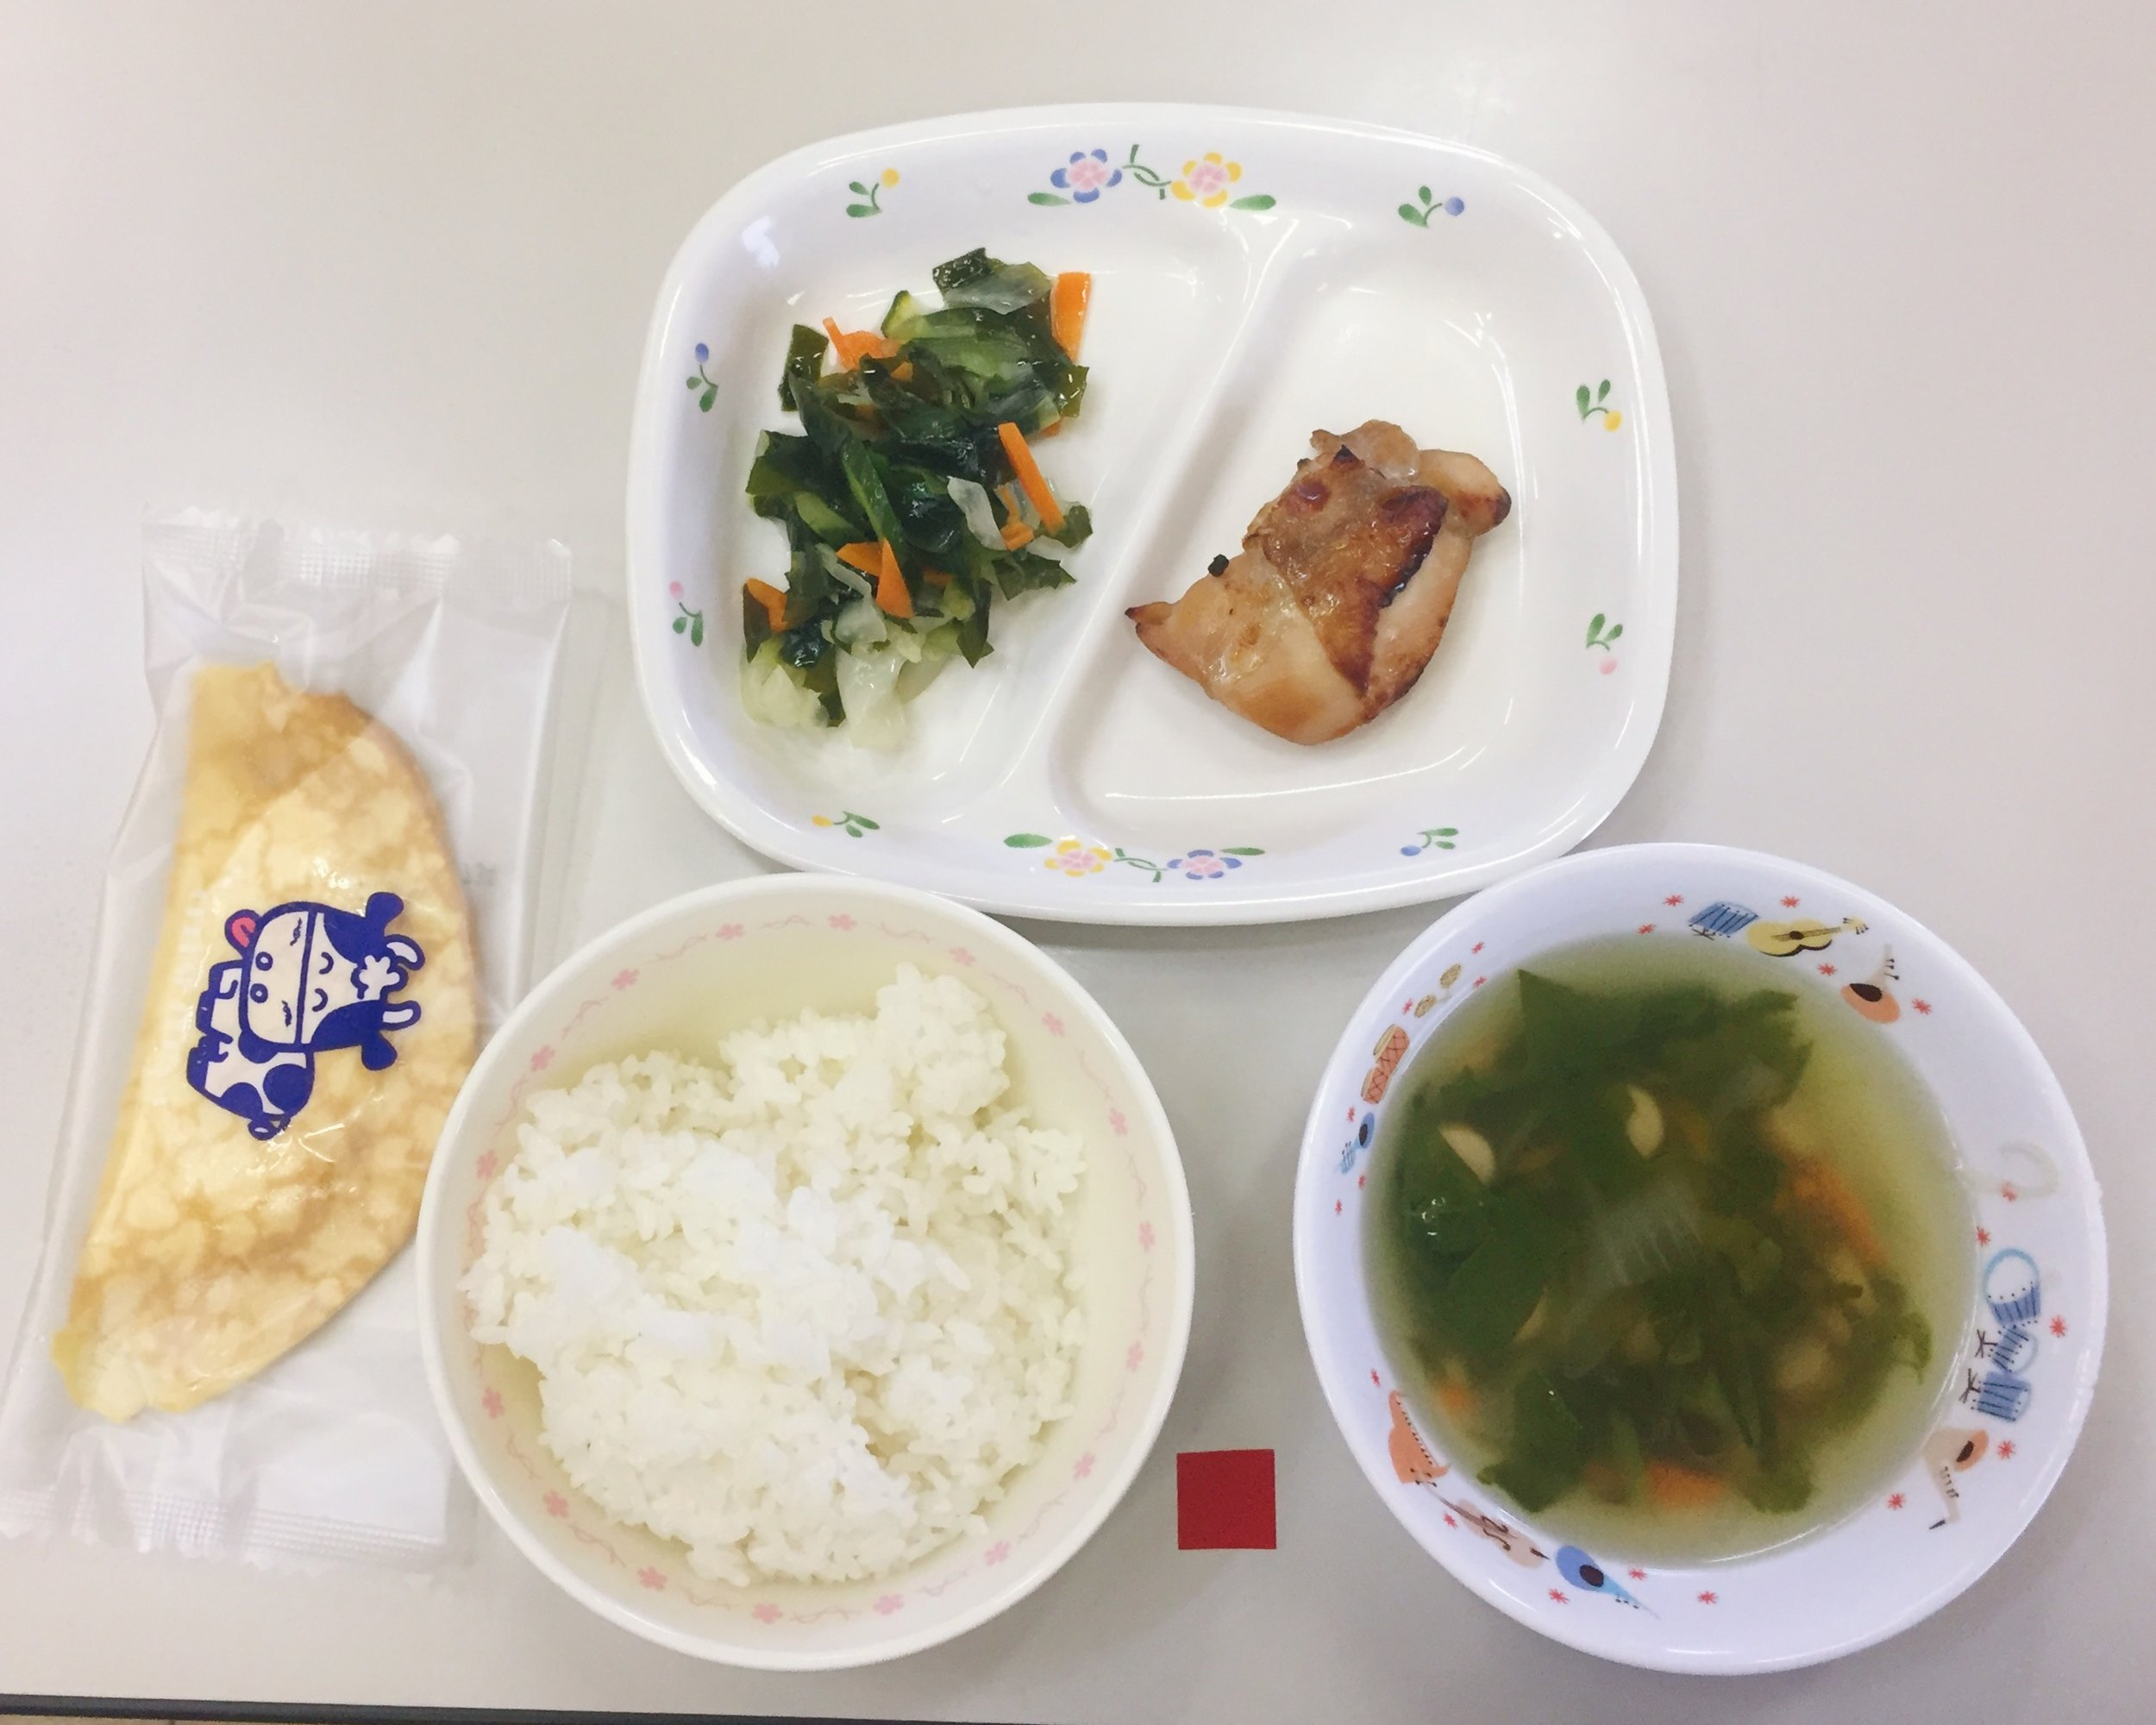 Teriyaki chicken, pickled seaweed salad, seaweed soup, white rice, and a crepe - Dessert is included in lunch roughly once per month as well as around holidays